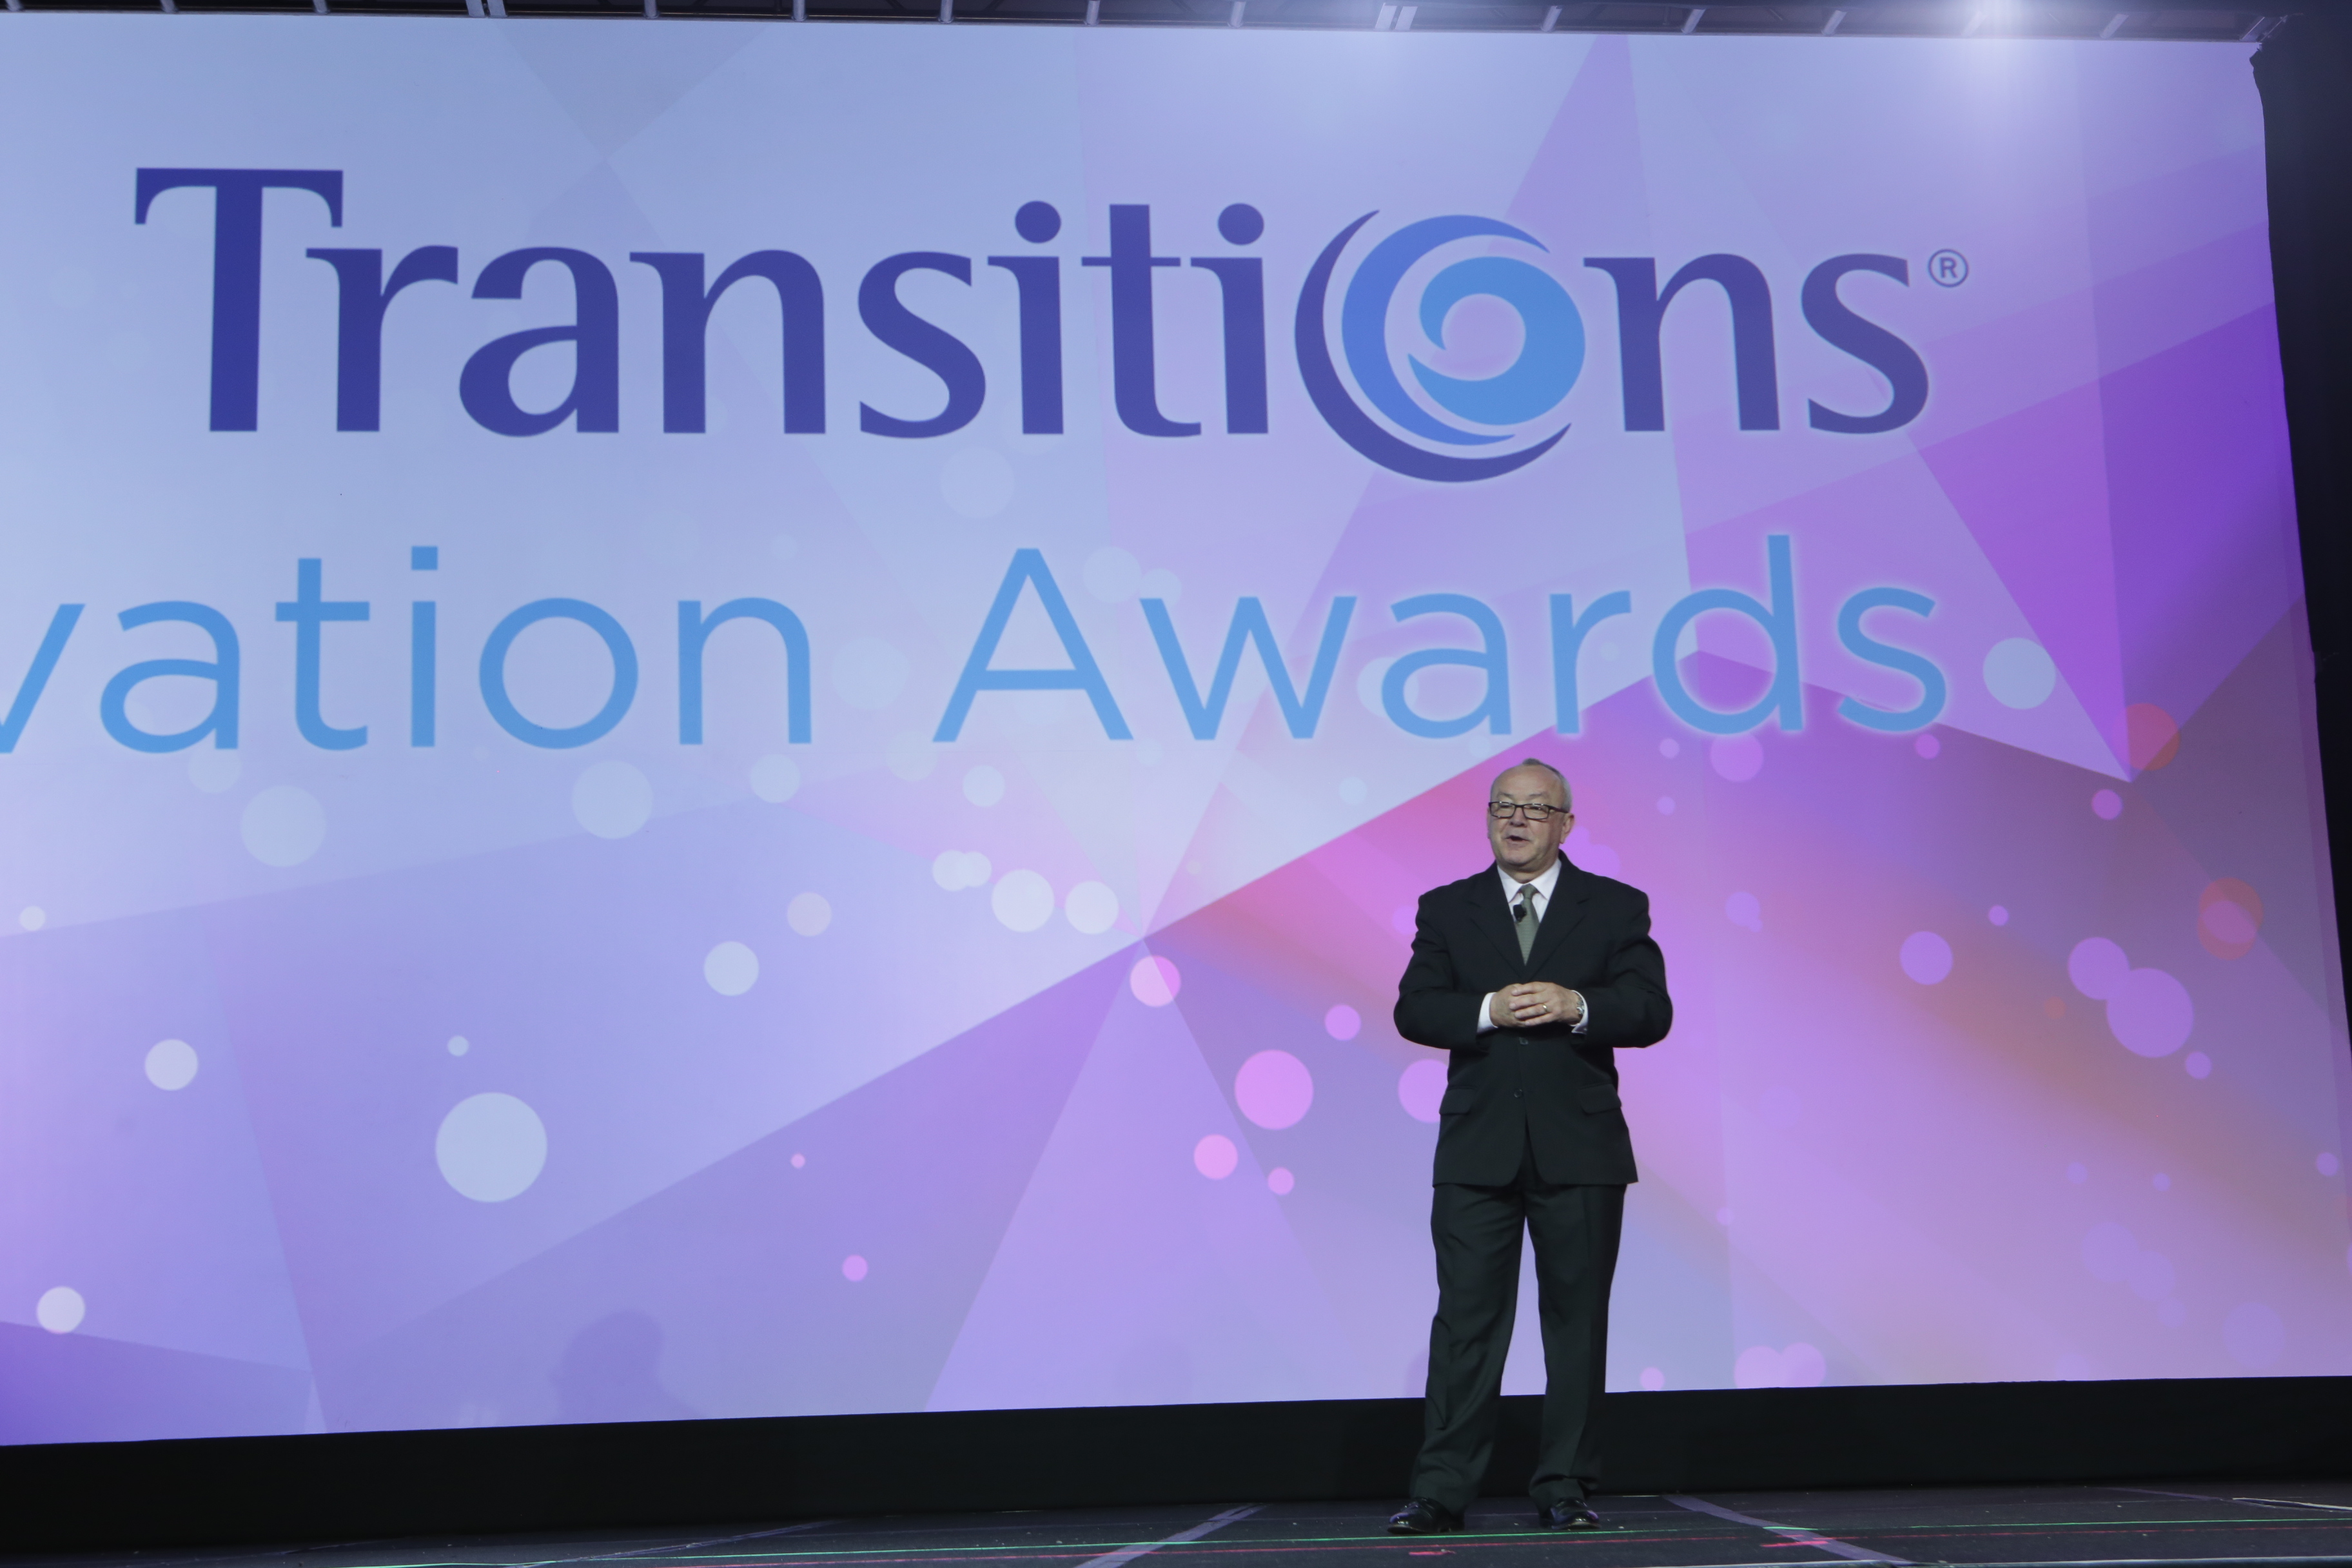 Transitions 2017 Innovation Award finalists announced